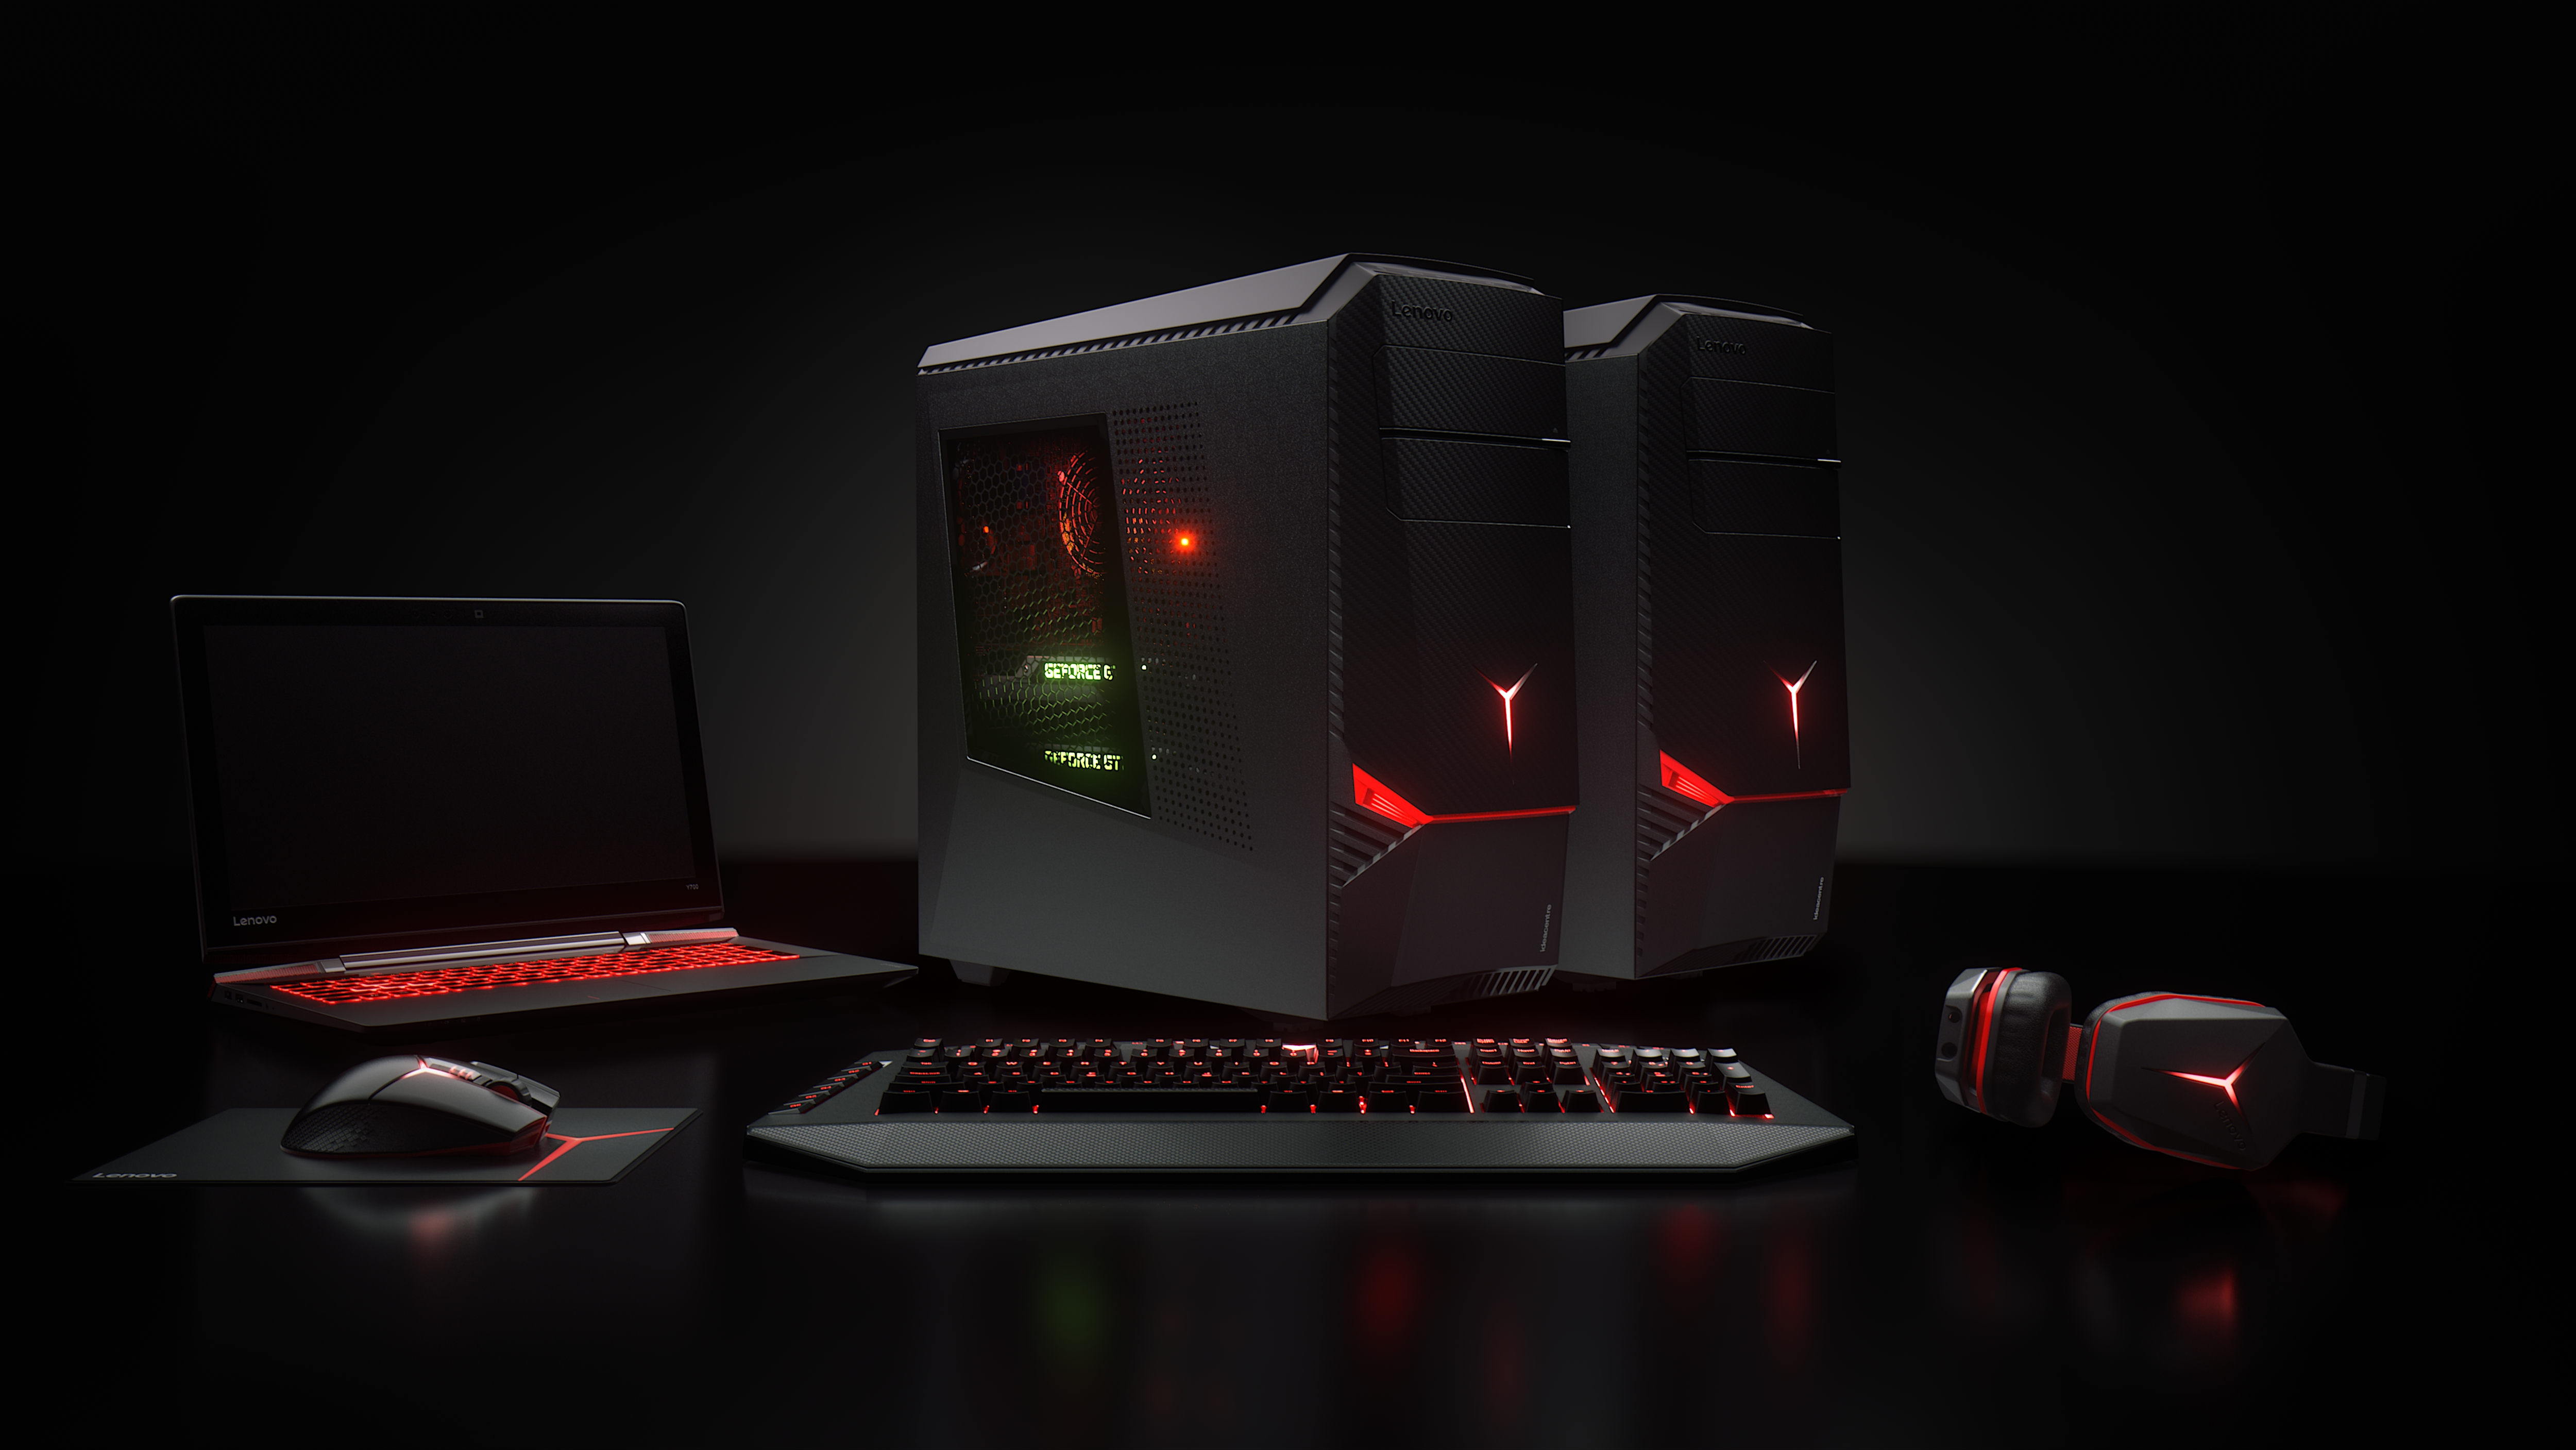 Lenovo Launches Ideapad Y700 Touch Gaming Laptop, Y700 And